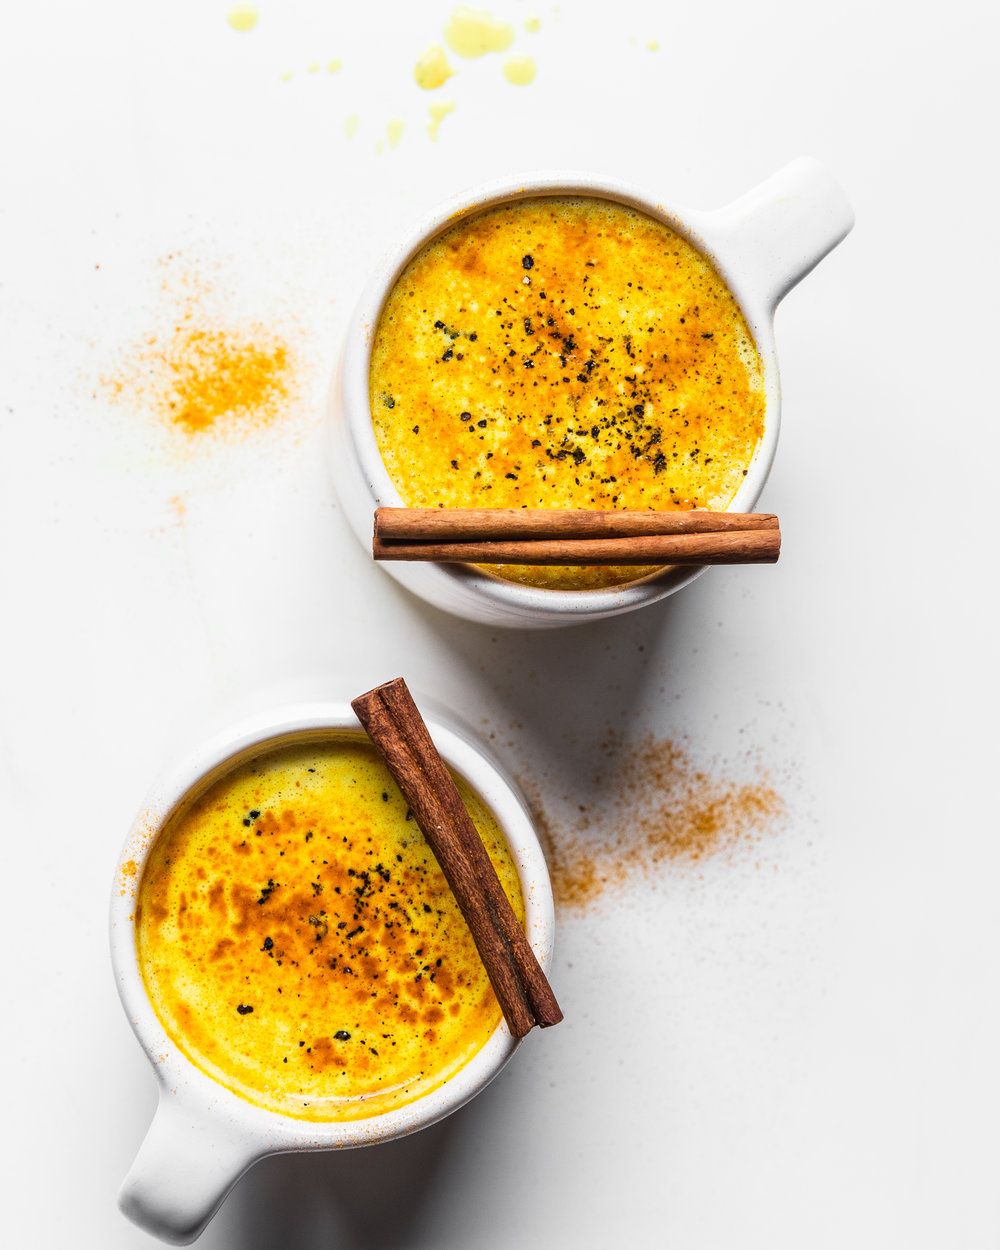 Turmeric Milk with Black Pepper and Adaptogens